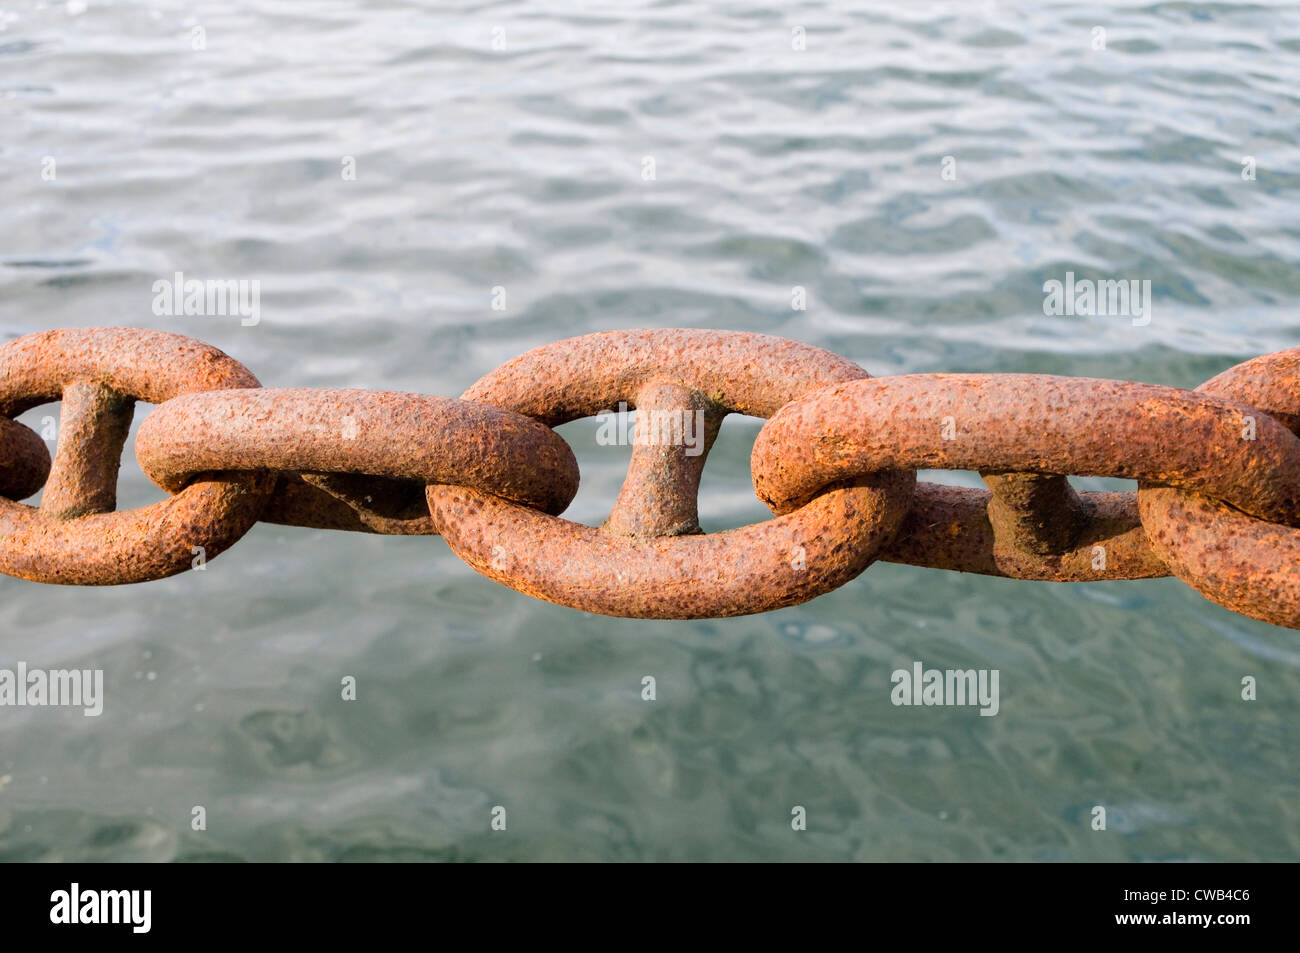 chain chains link links